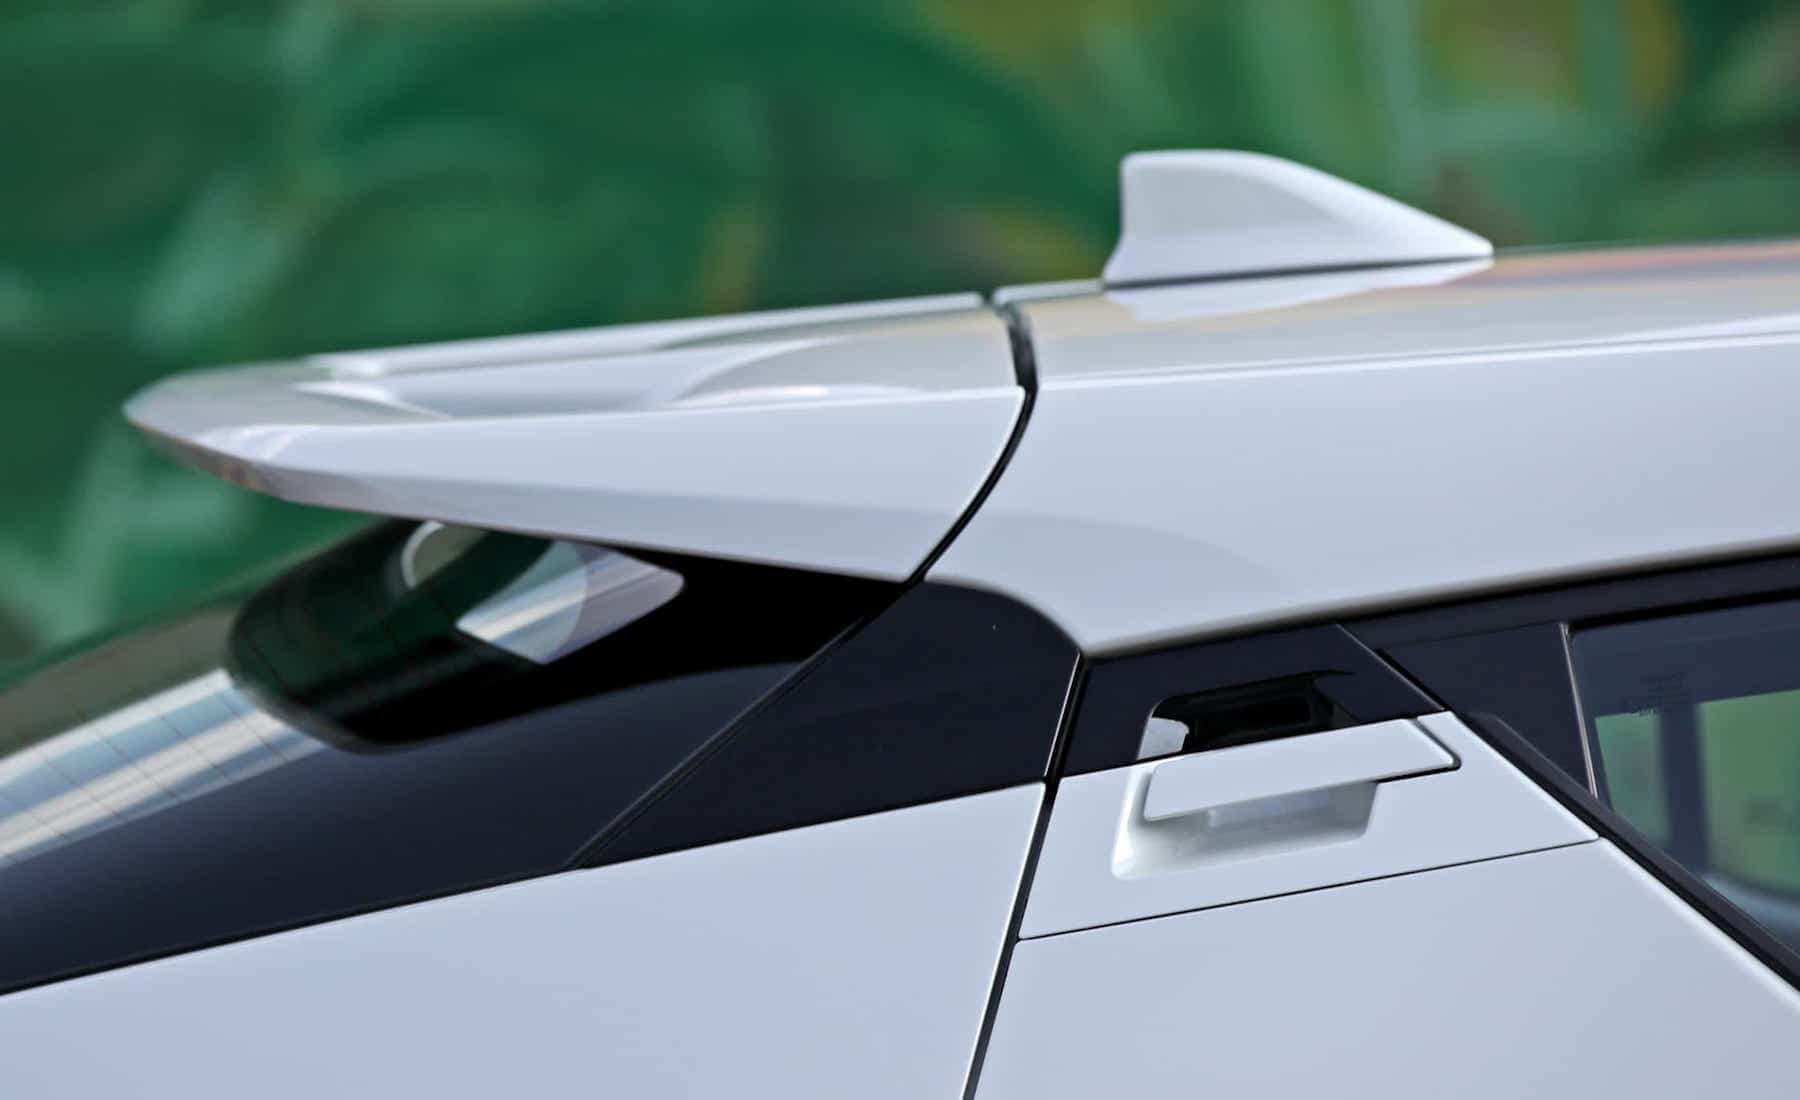 2018 Toyota C HR XLE Premium Exterior View Rear Roof Spoiler (Photo 14 of 52)